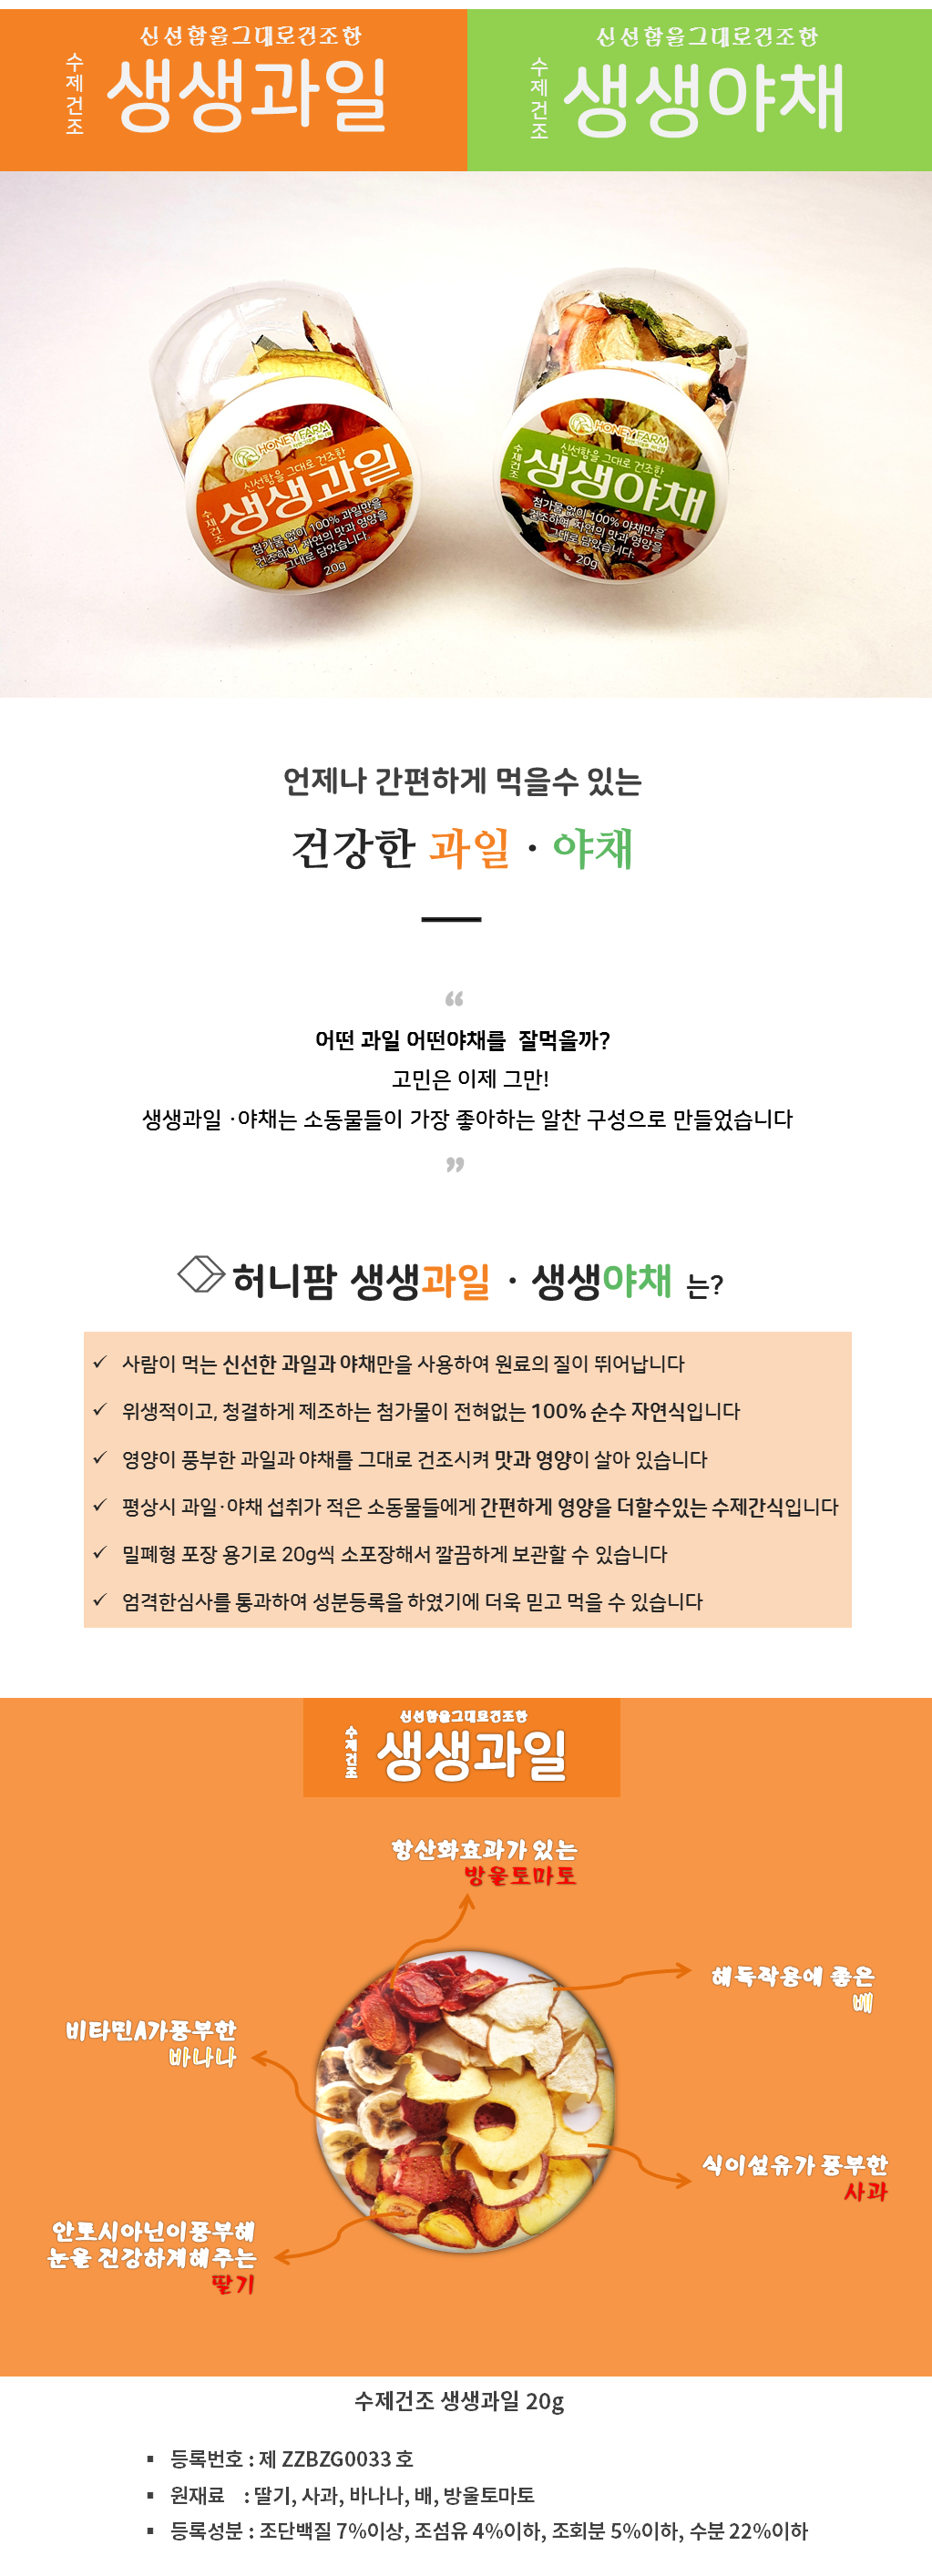 슬라이드1_shop1_110611 copy.png